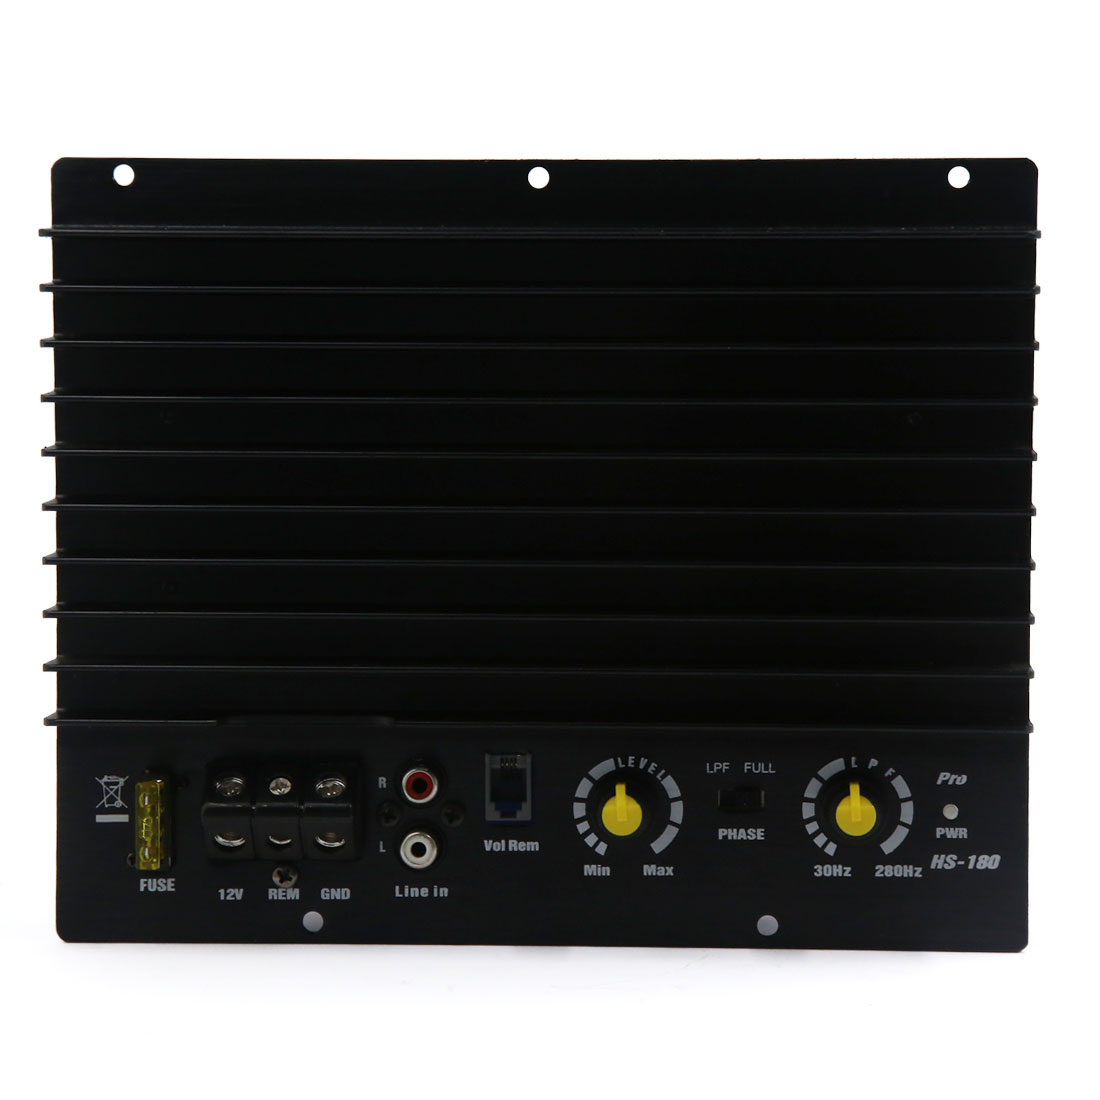 10 Inches HS-180 Audio Stereo Power Amplifier Speaker for Vehicle Car